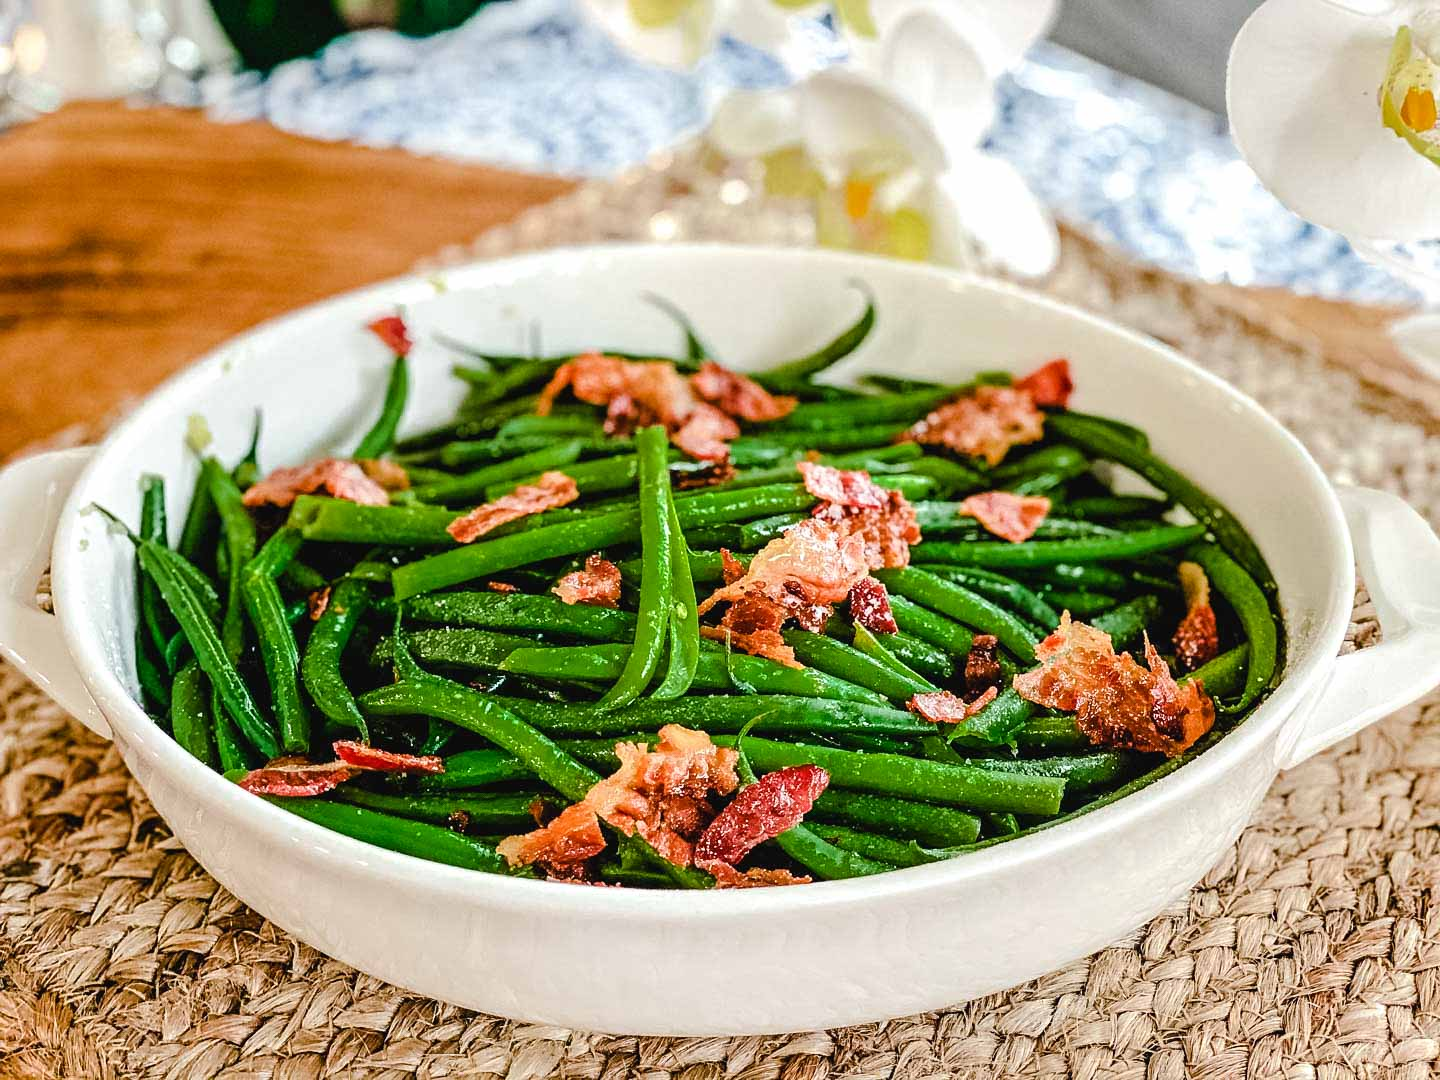 Cooked green beans with bacon on top.